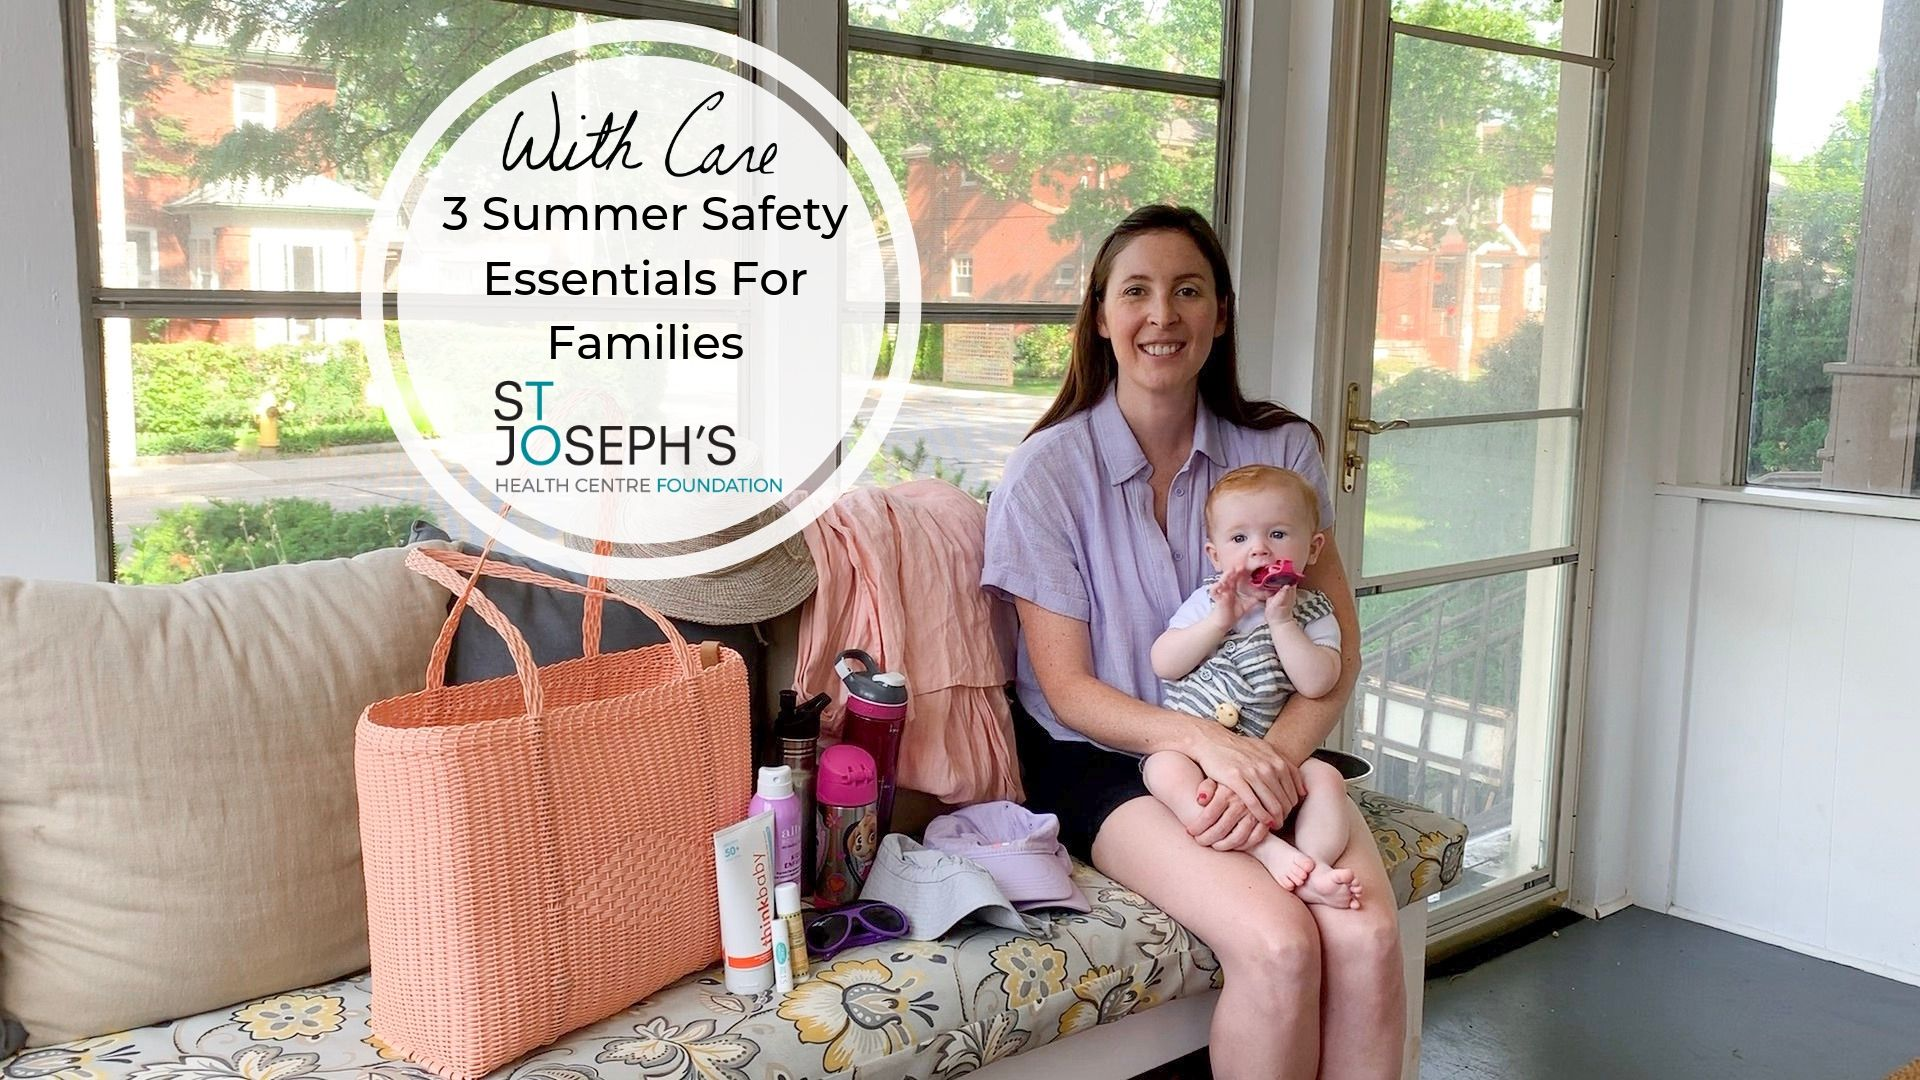 3 Summer Safety Essentials For Families.jpg